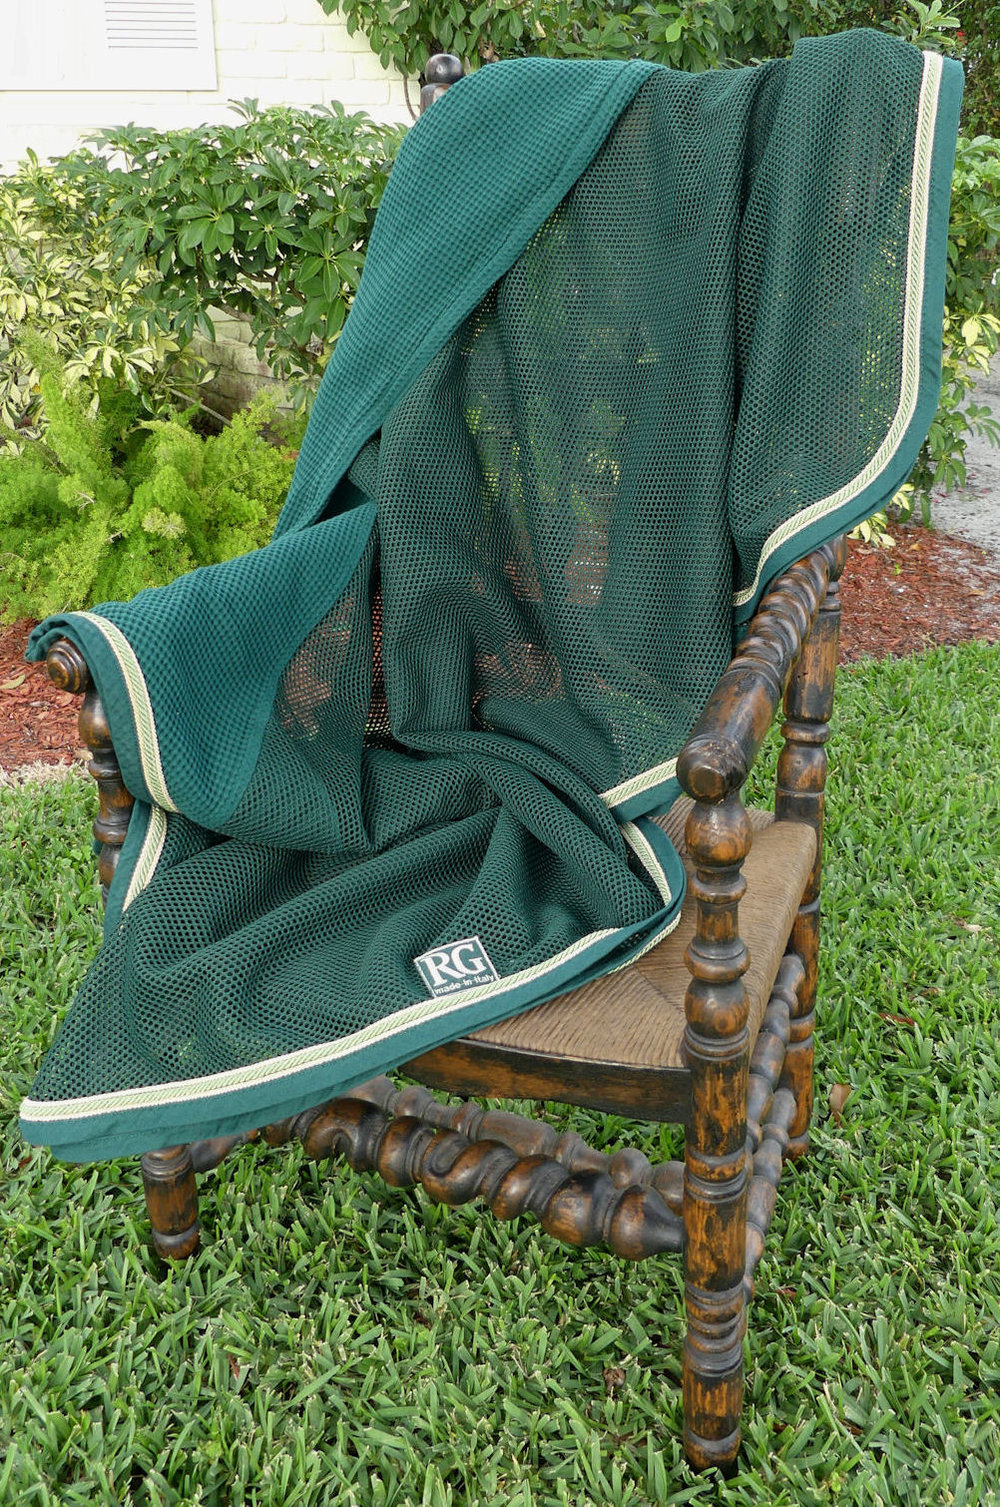 RG Italy Hunter Green Netted Equestrian Horse Rug    $295